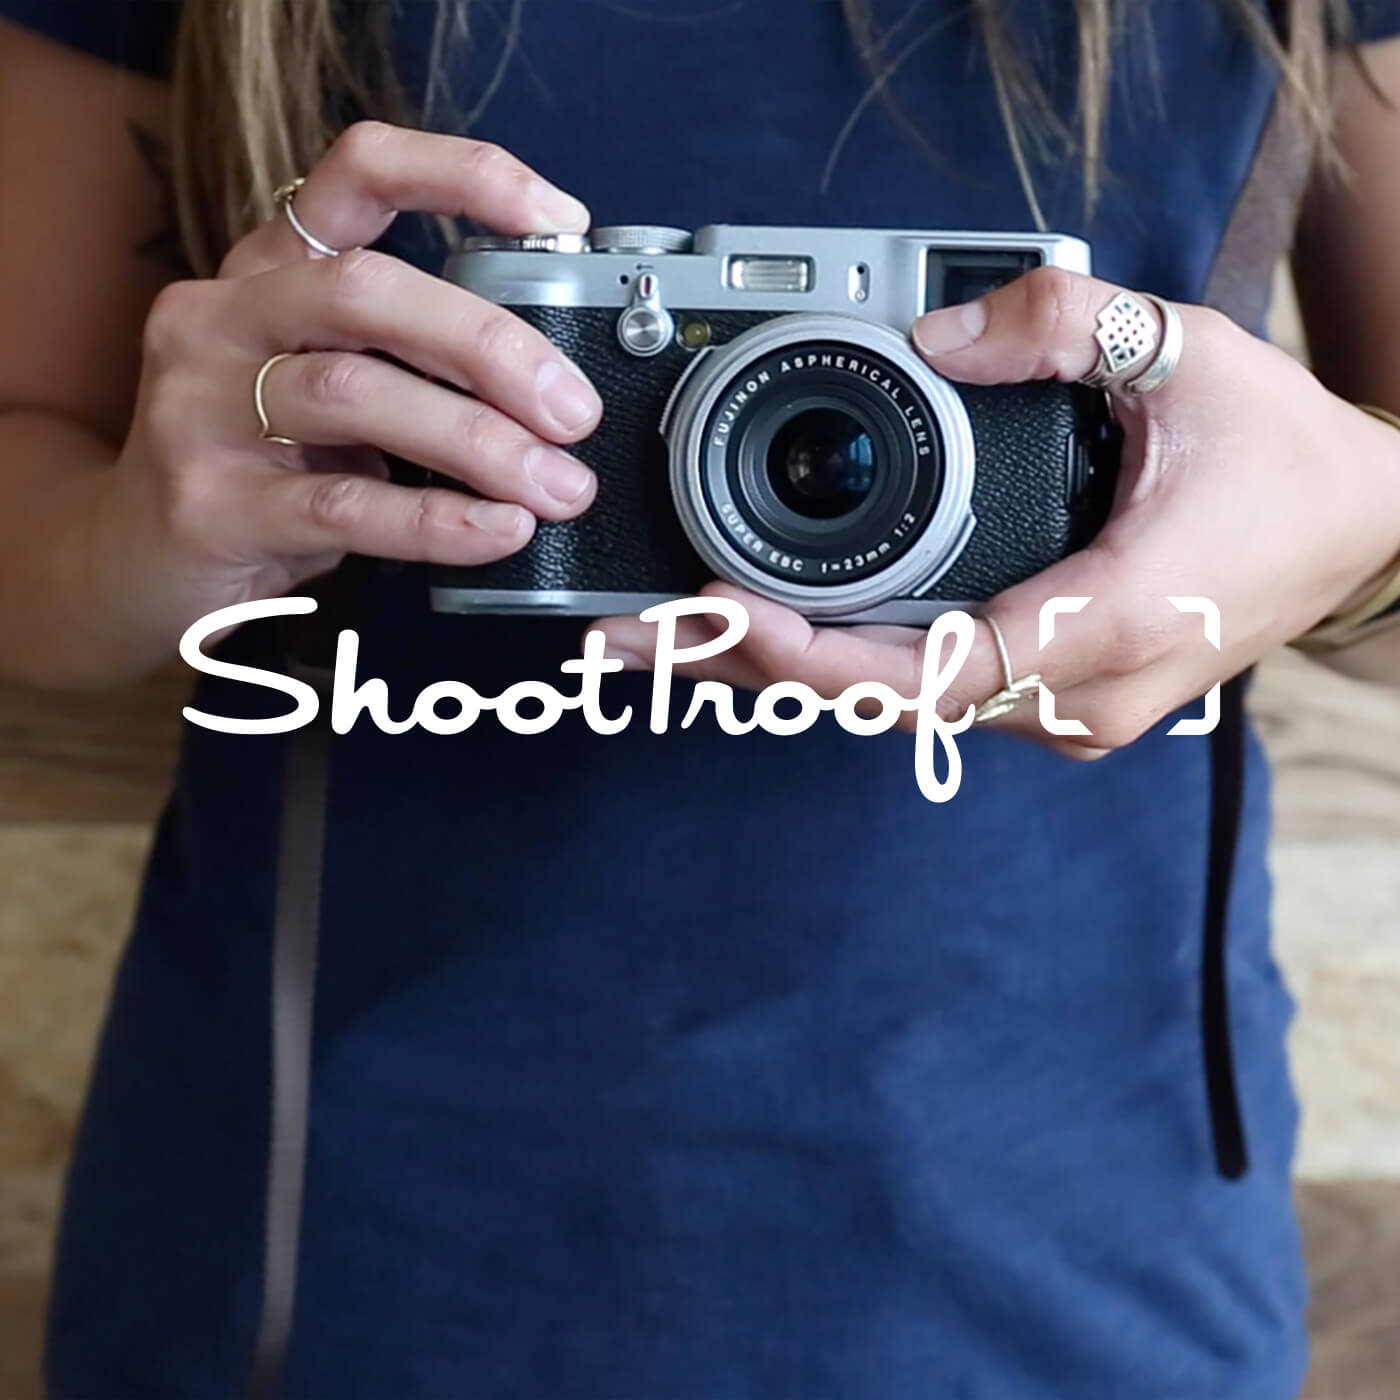 ShootProof - Art direction projects for ShootProof, a startup in Atlanta that provides client photo galleries and sales tools to photographers, including the company's first brand guidelines, video and print advertising, and marketing website designs.View Project →